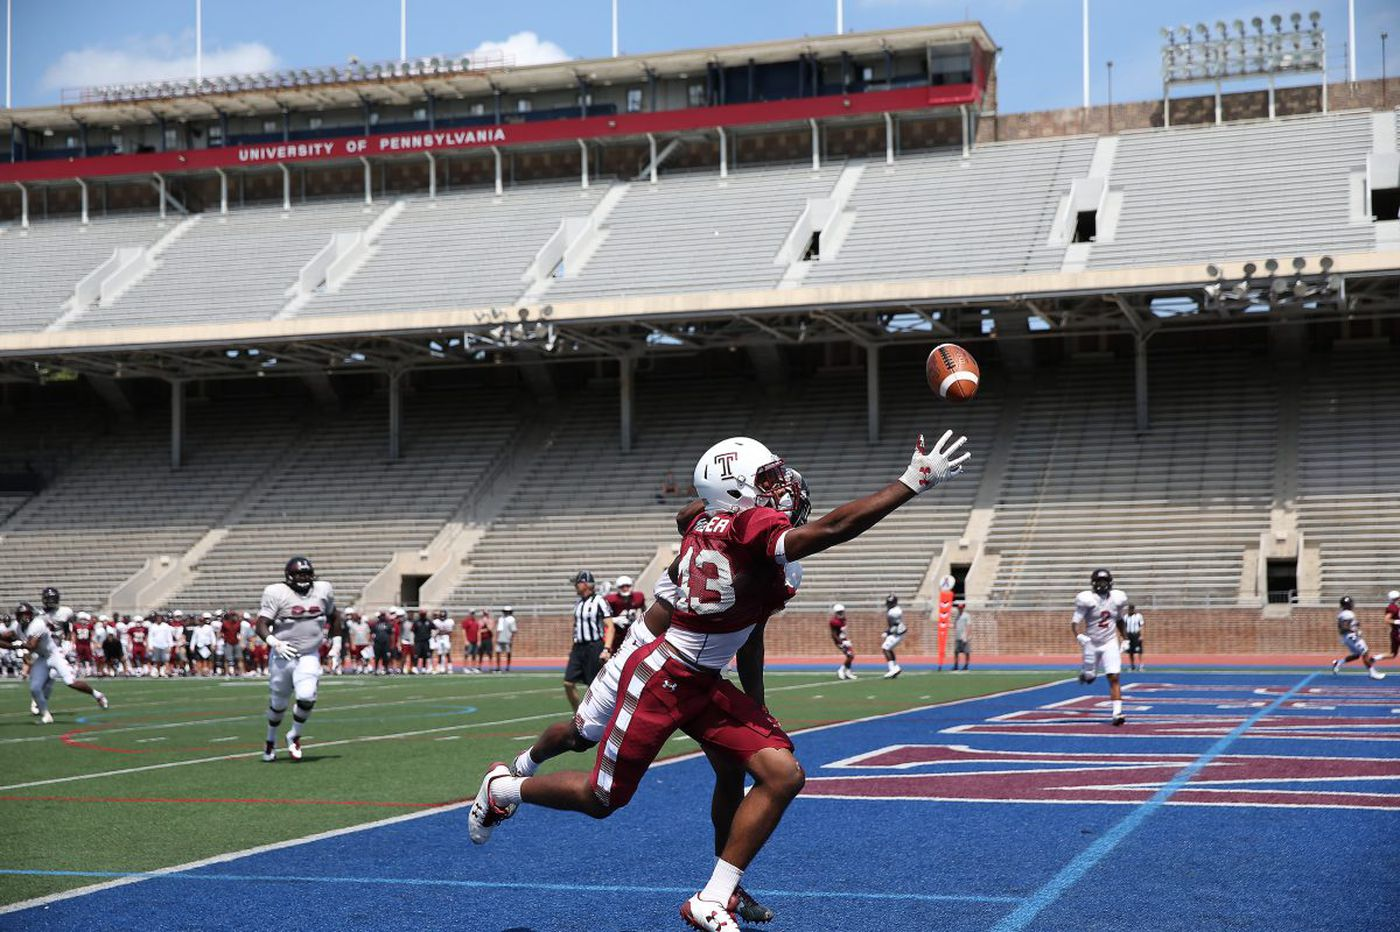 Owls treat scrimmage like real game situation; Finch given tough-guy number